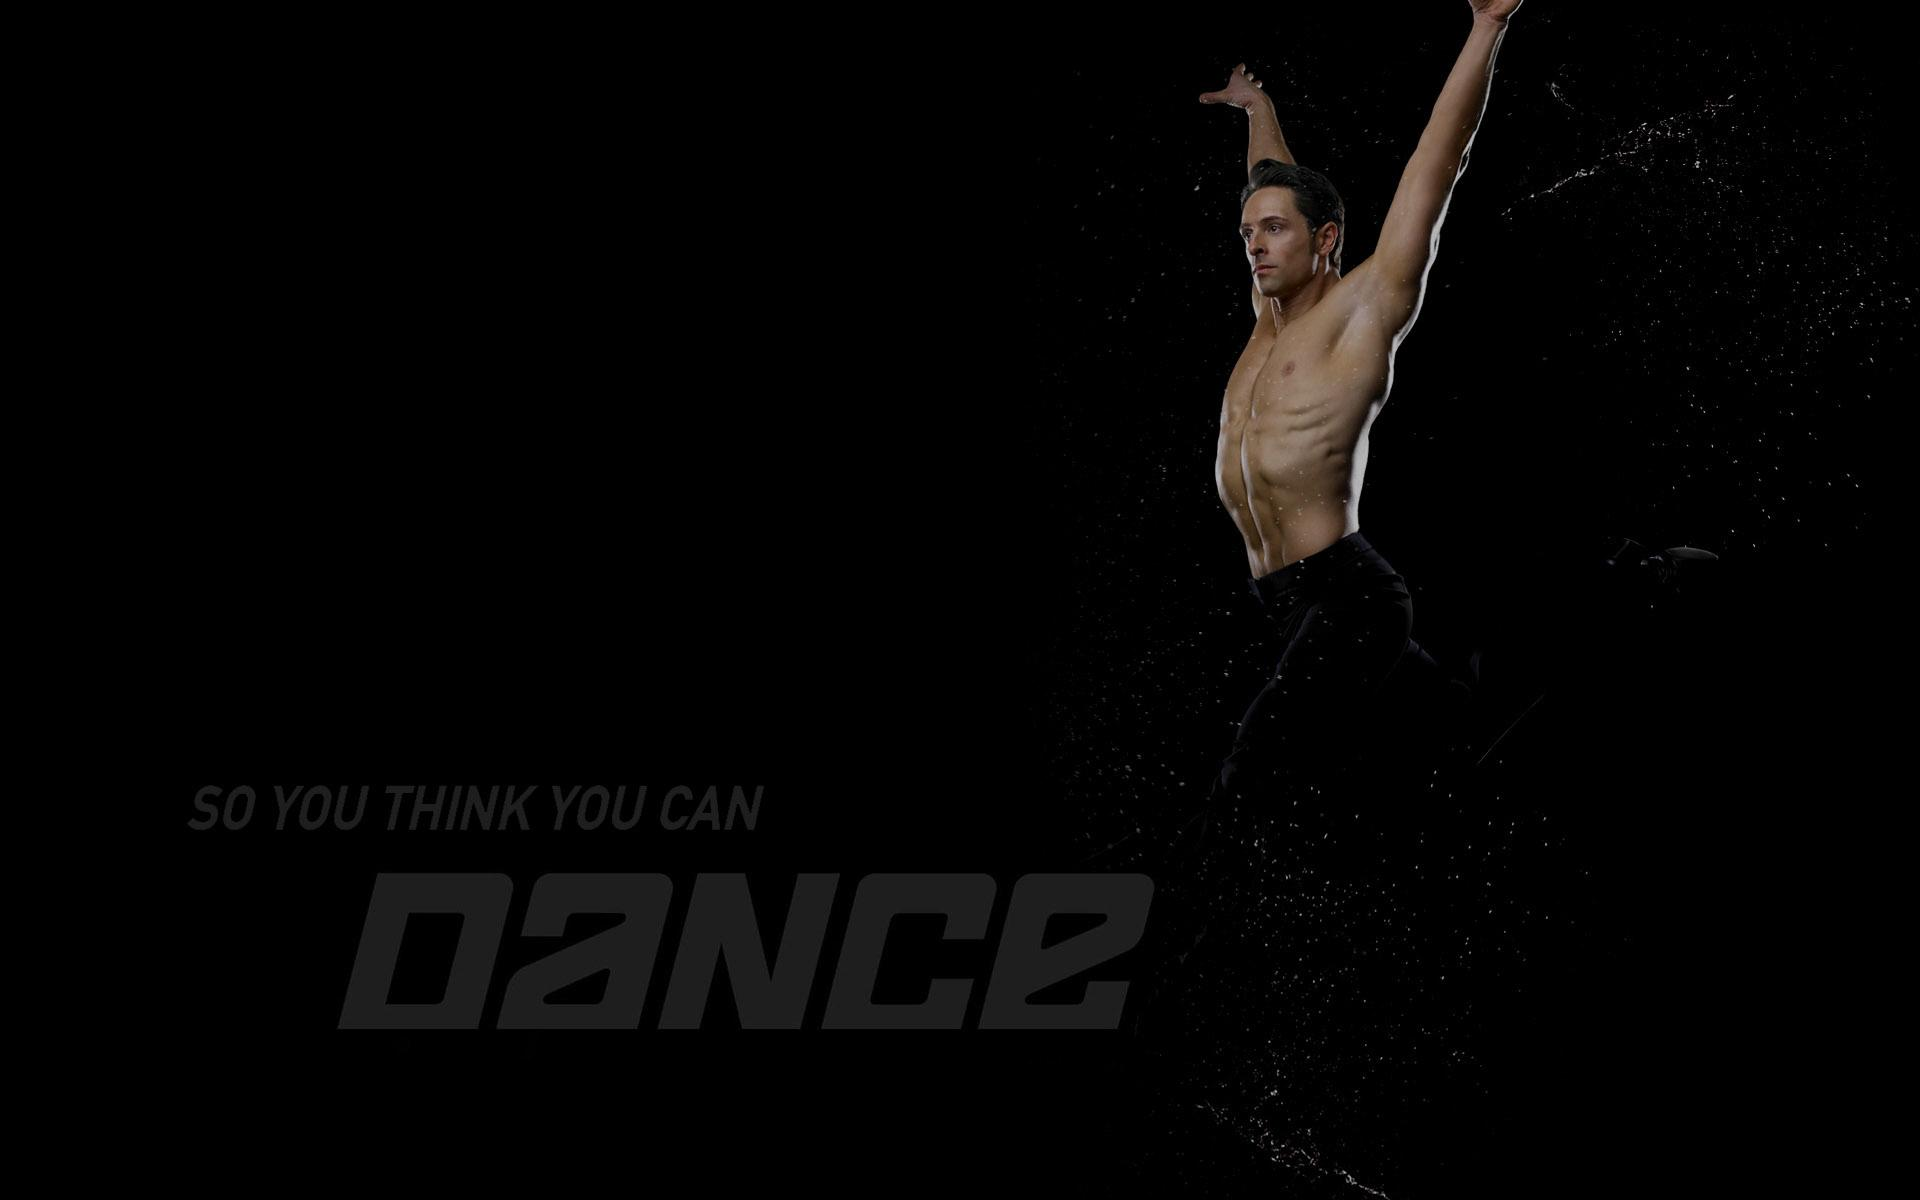 So You Think You Can Dance wallpapers HD quality